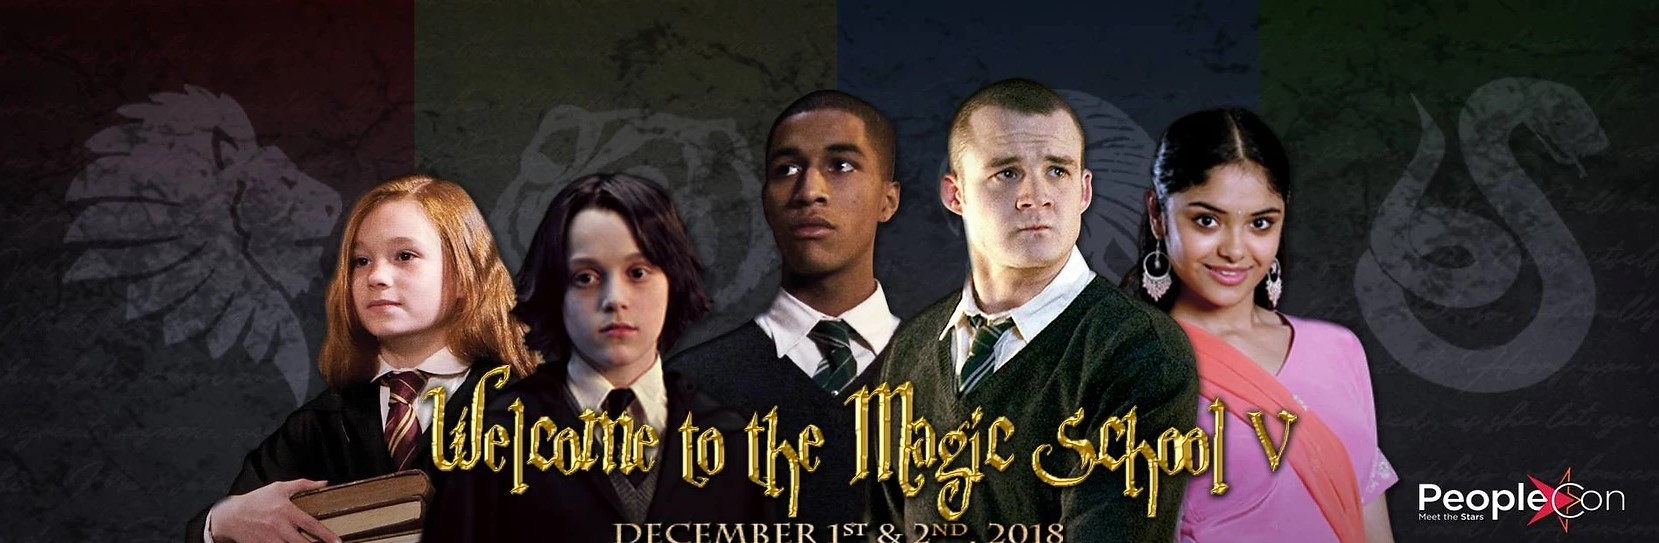 Welcome to the Magic School 5